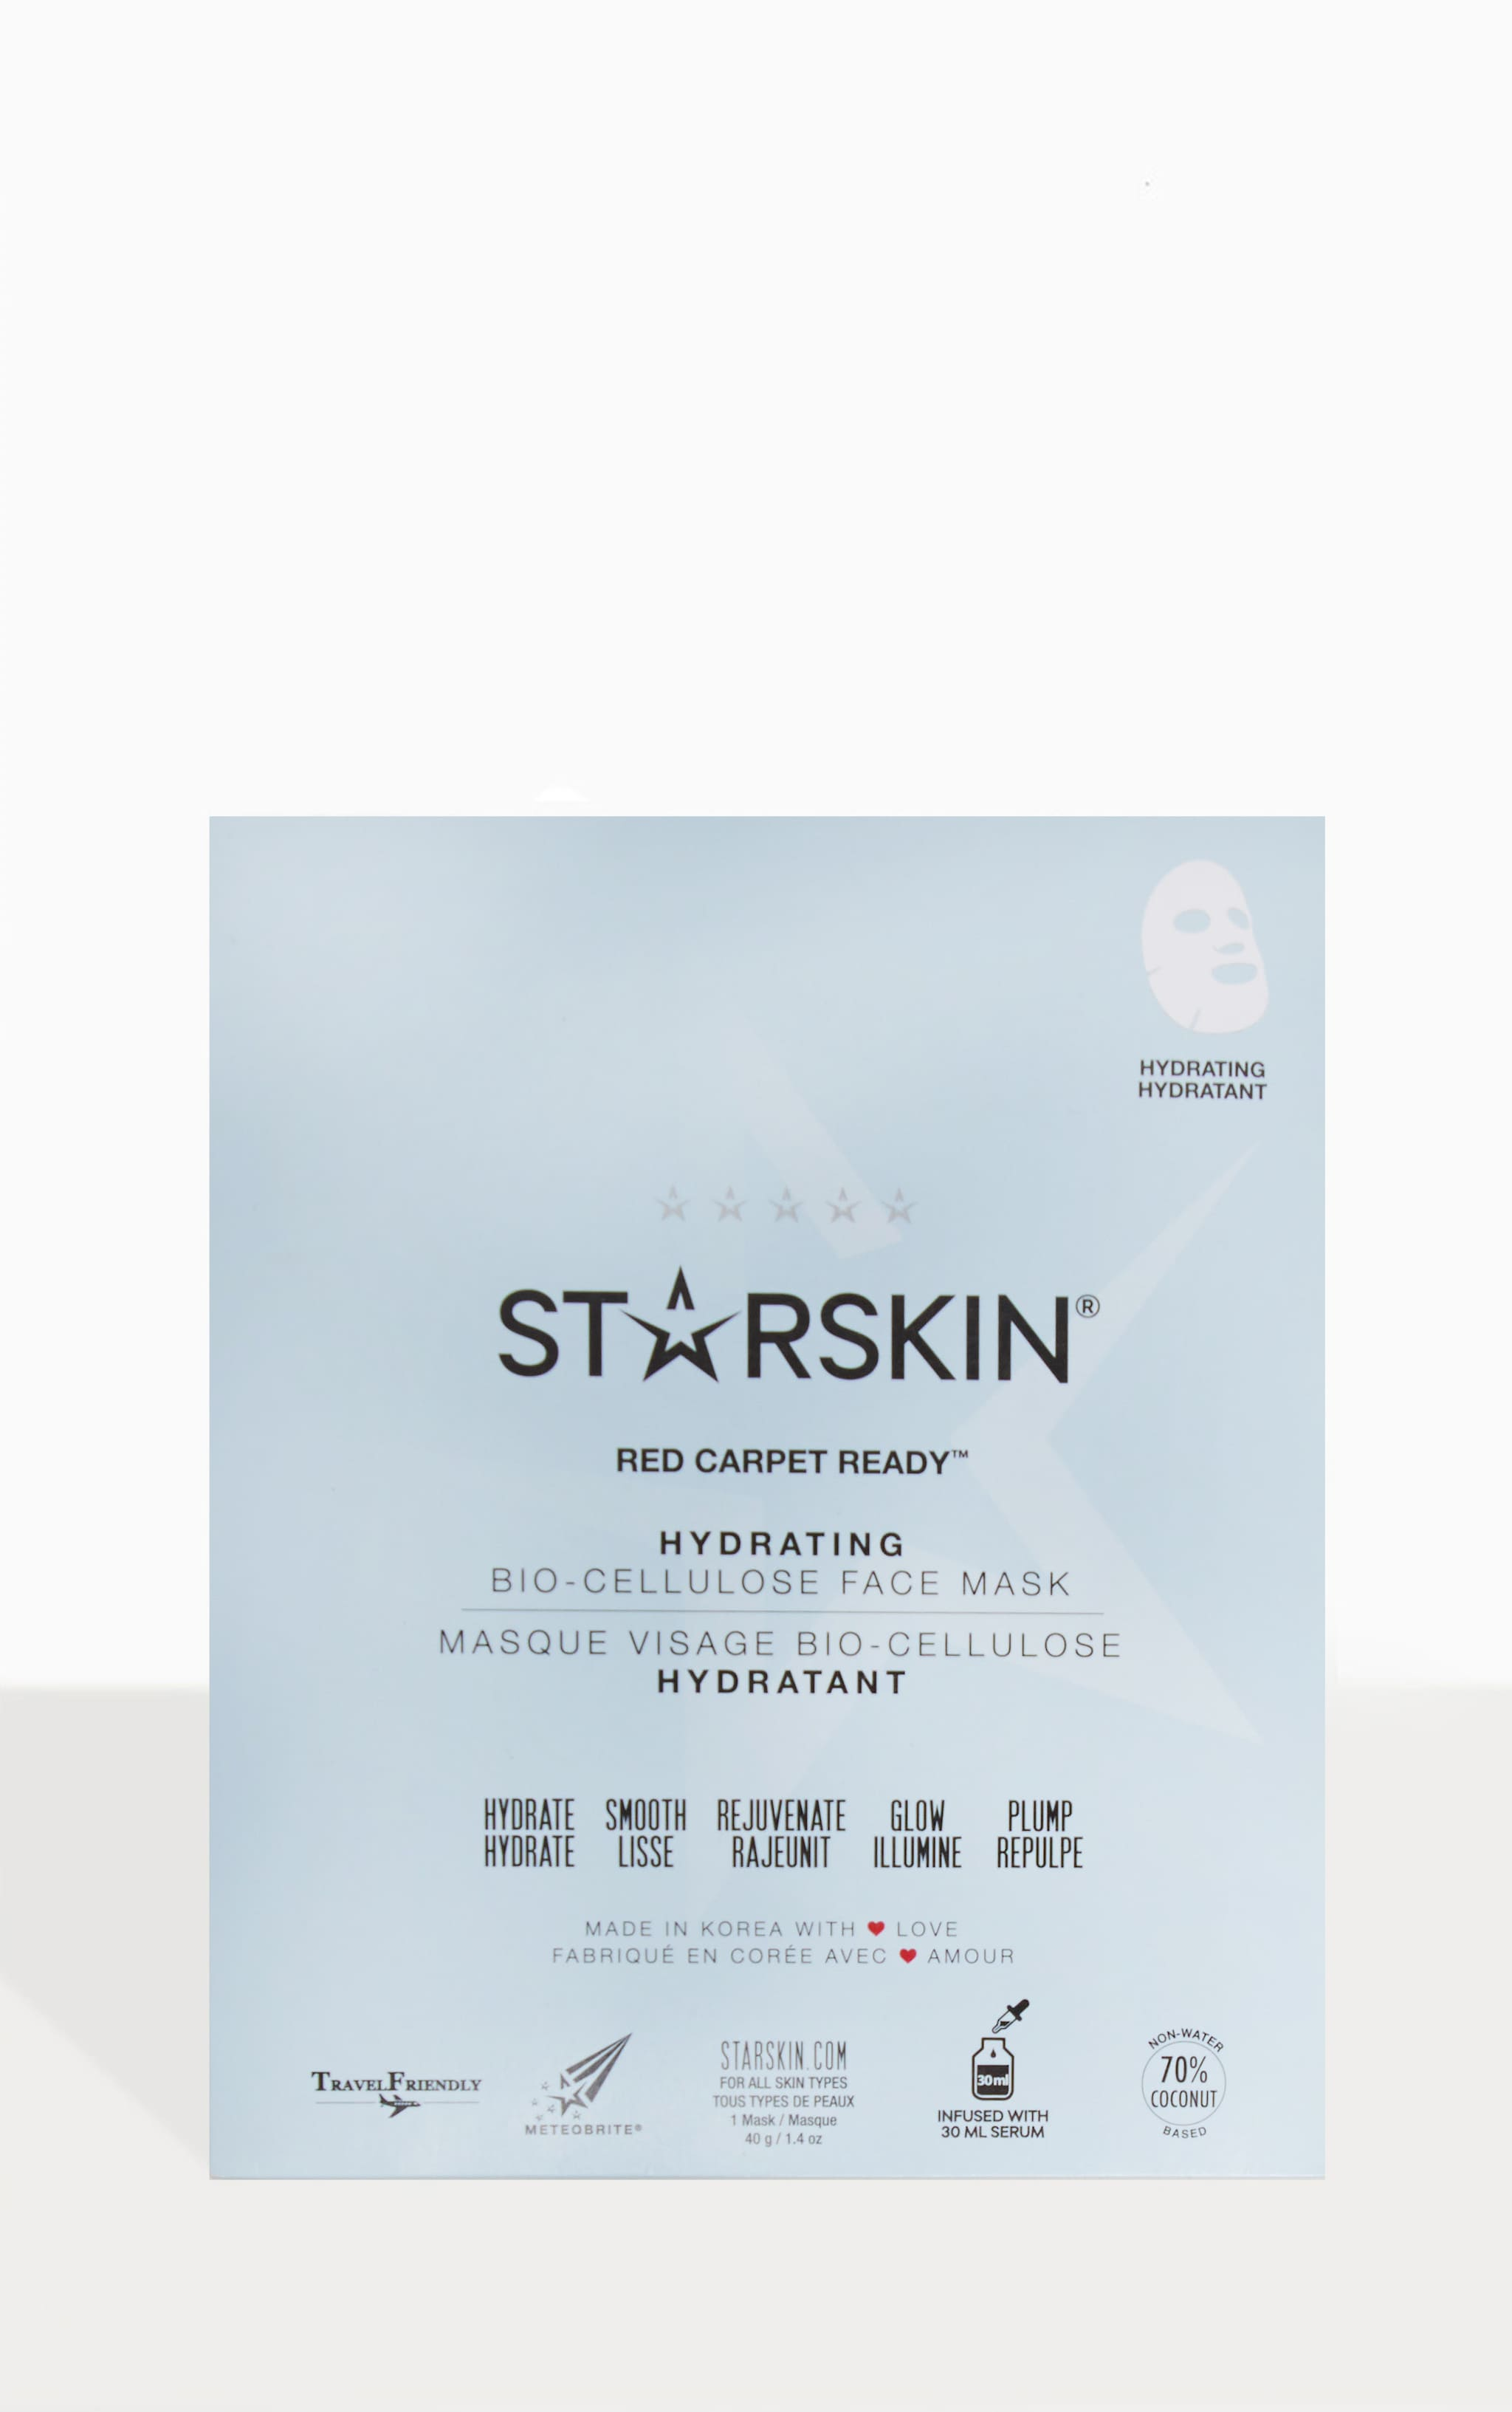 Starskin Red Carpet Ready Hydrating Coconut Bio Cellulose Face Mask 1